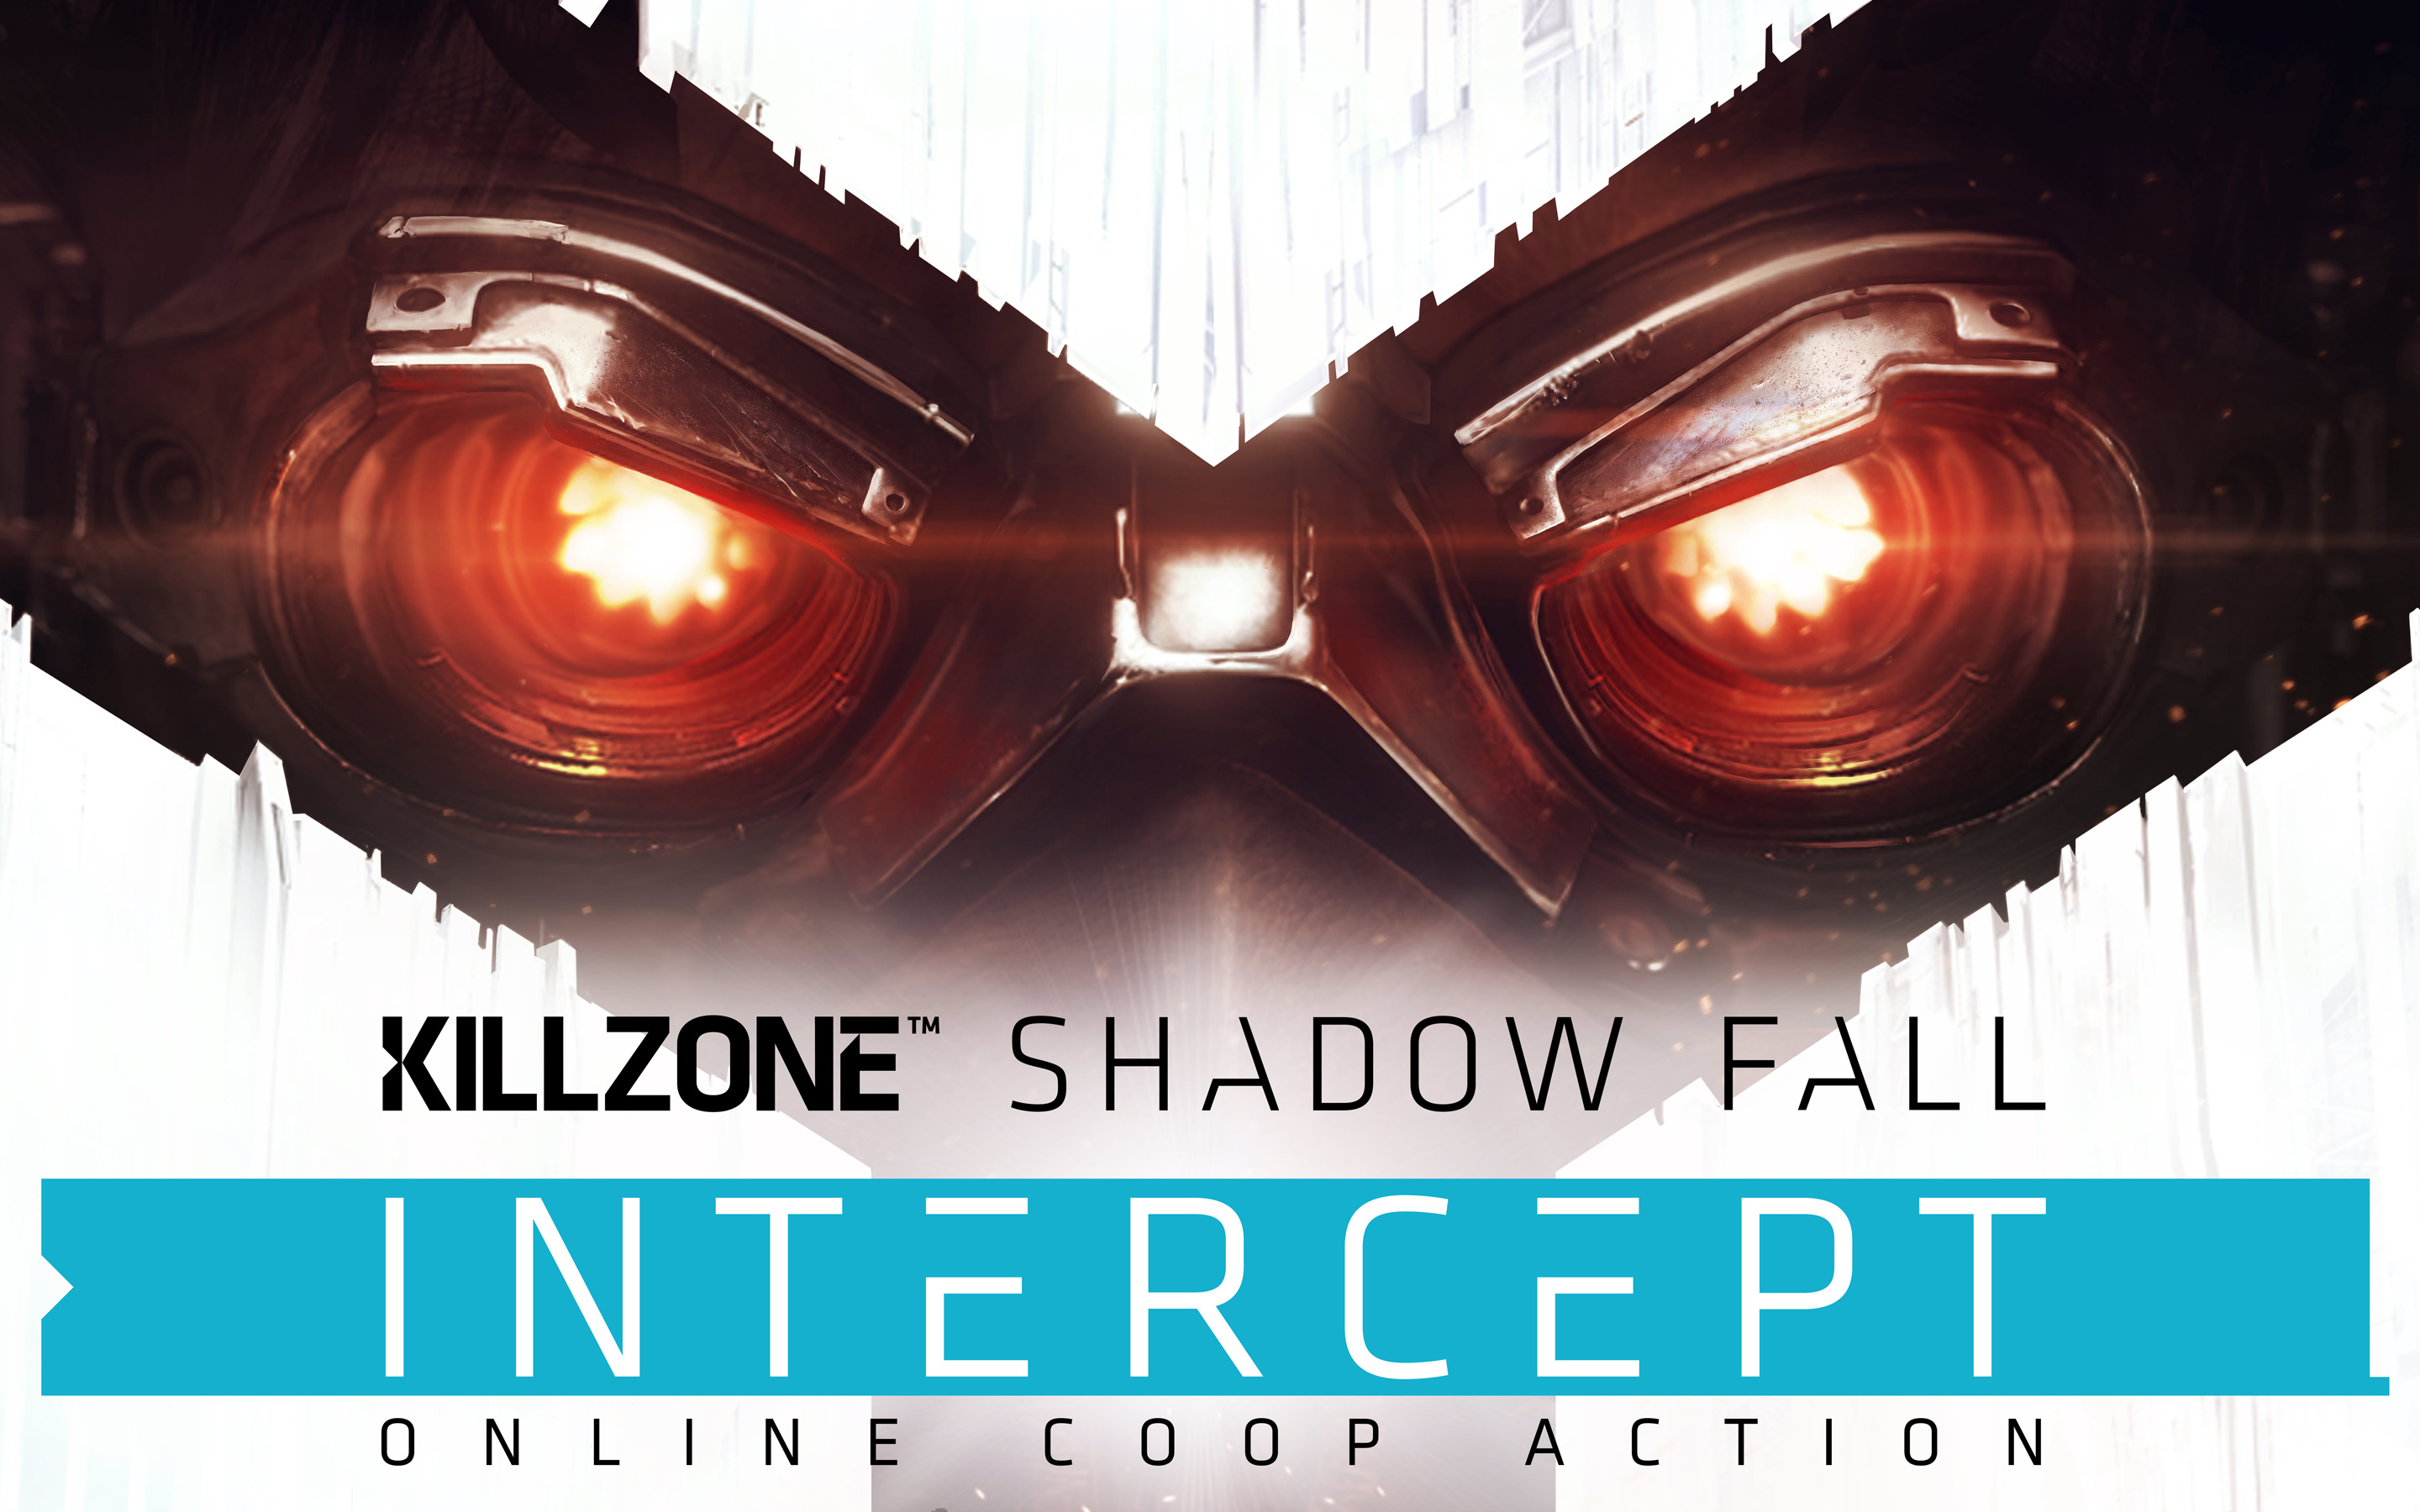 Killzone Shadow Fall Intercept